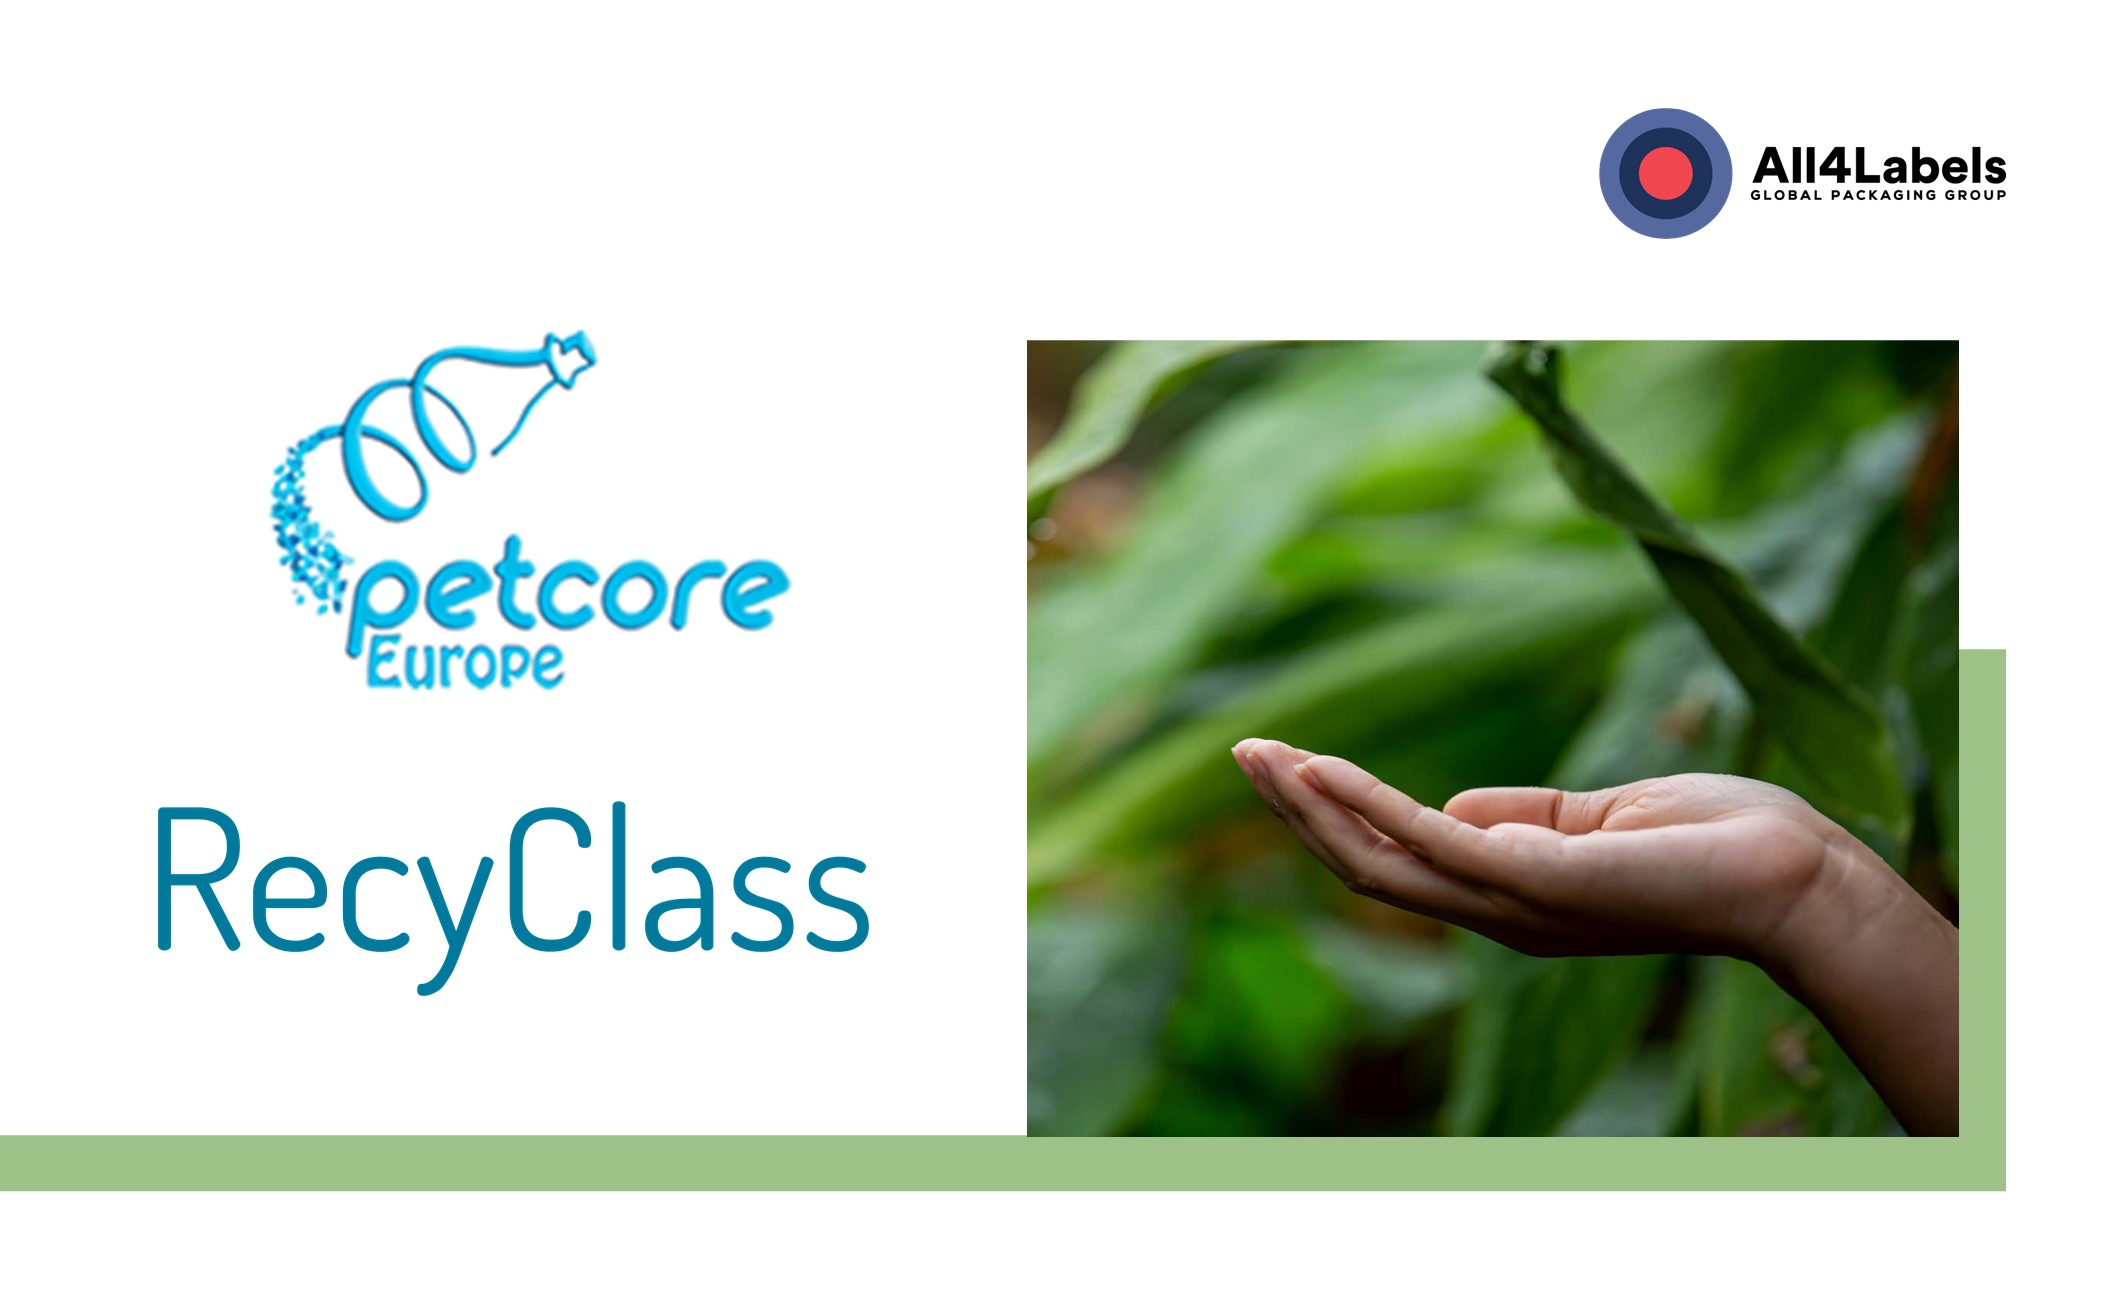 All4Labels joins the initiatives Petcore and RecyClass as part of its sustainability strategy